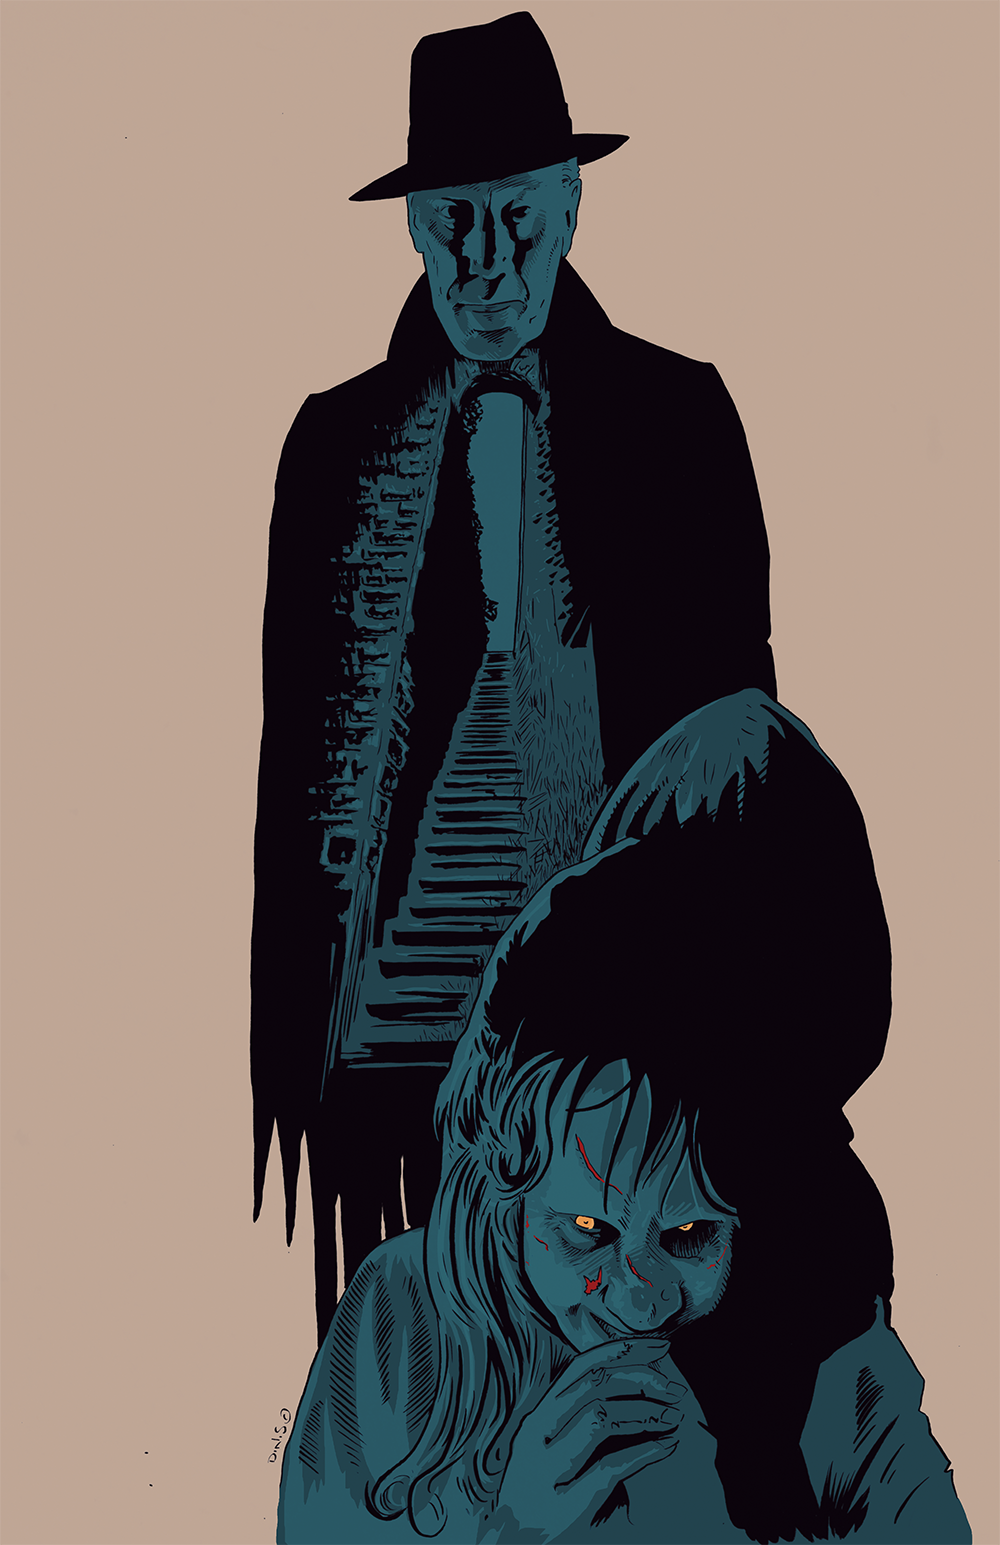 Image of The Exorcist by D.N.S